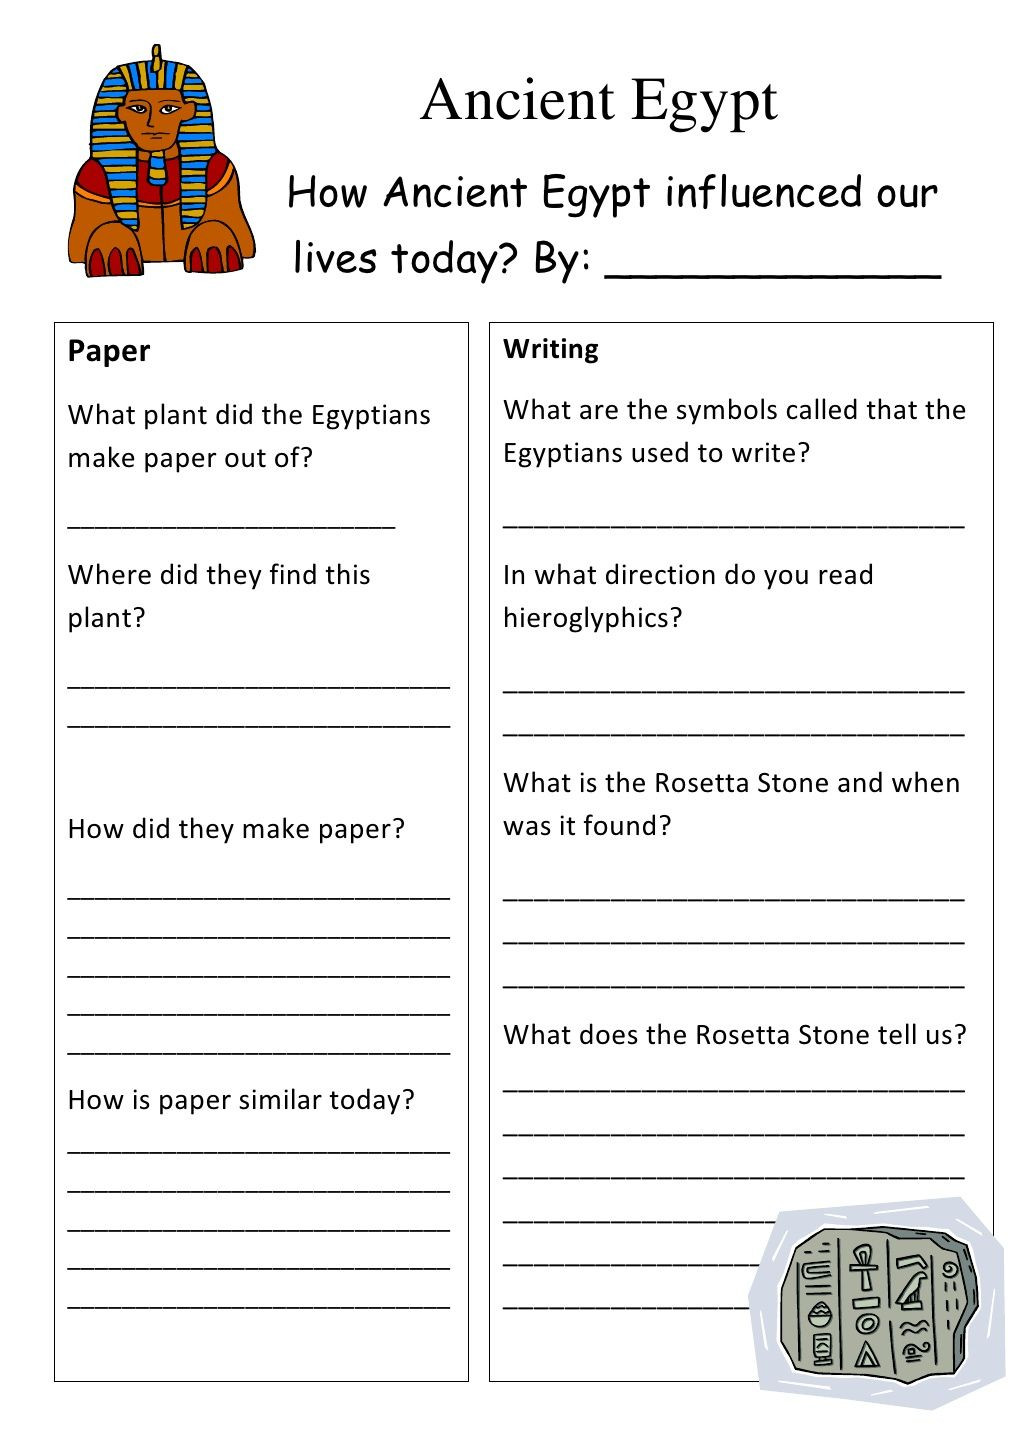 7th Grade World History Worksheets Ancient Egypt Worksheet by 7gchaffey Via Slideshare